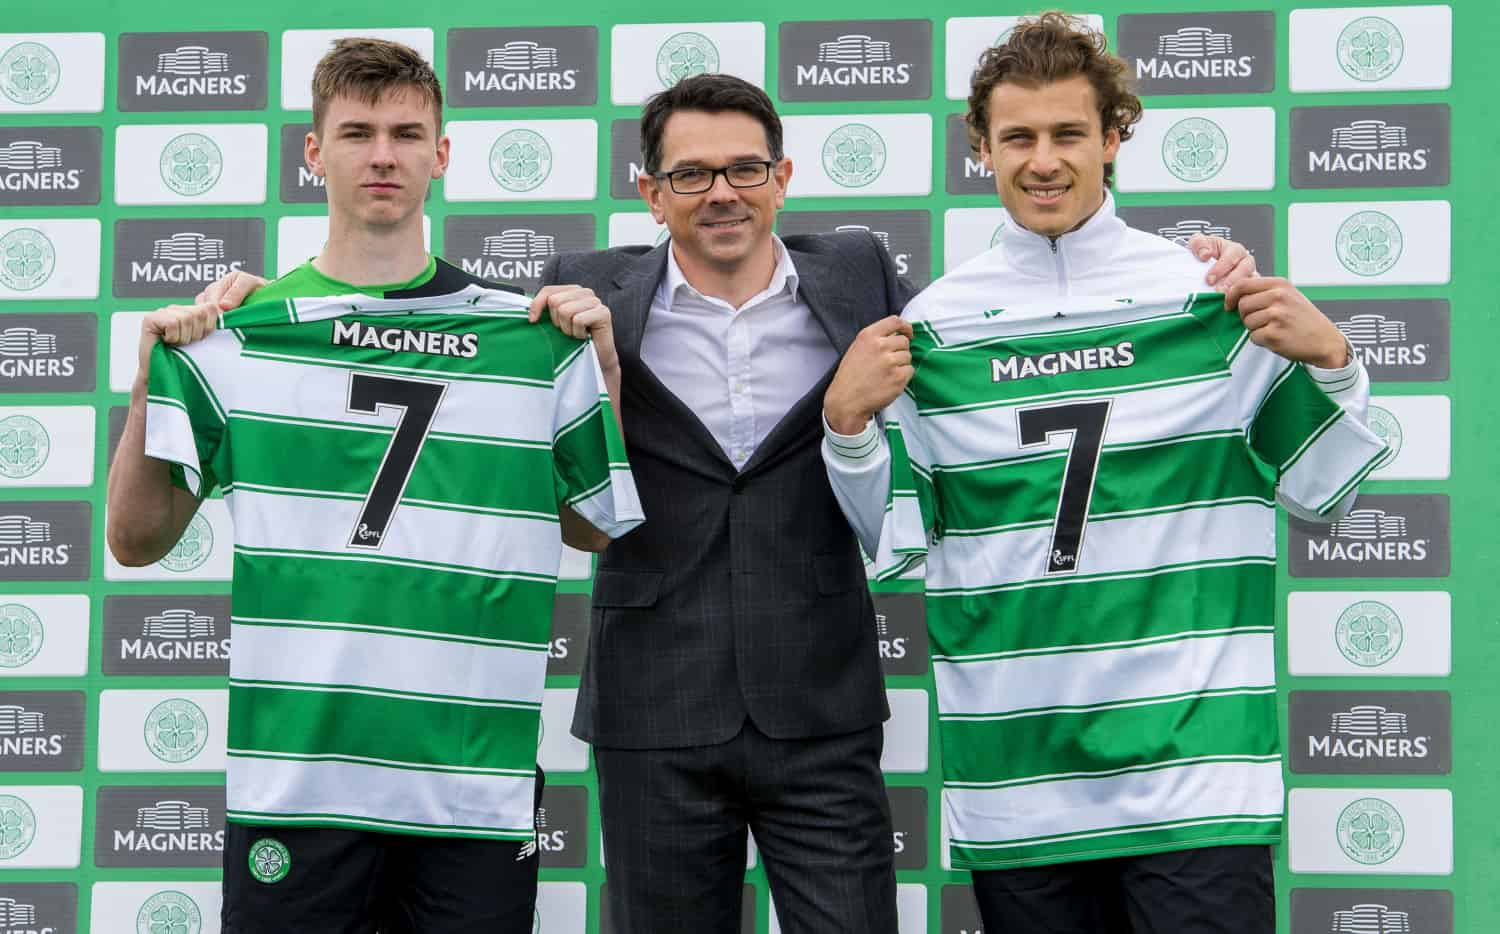 Celtics Kieran Tierney left and Erik Sviatchenko join Magners Paul Condron centre to announce a new partnership agreement